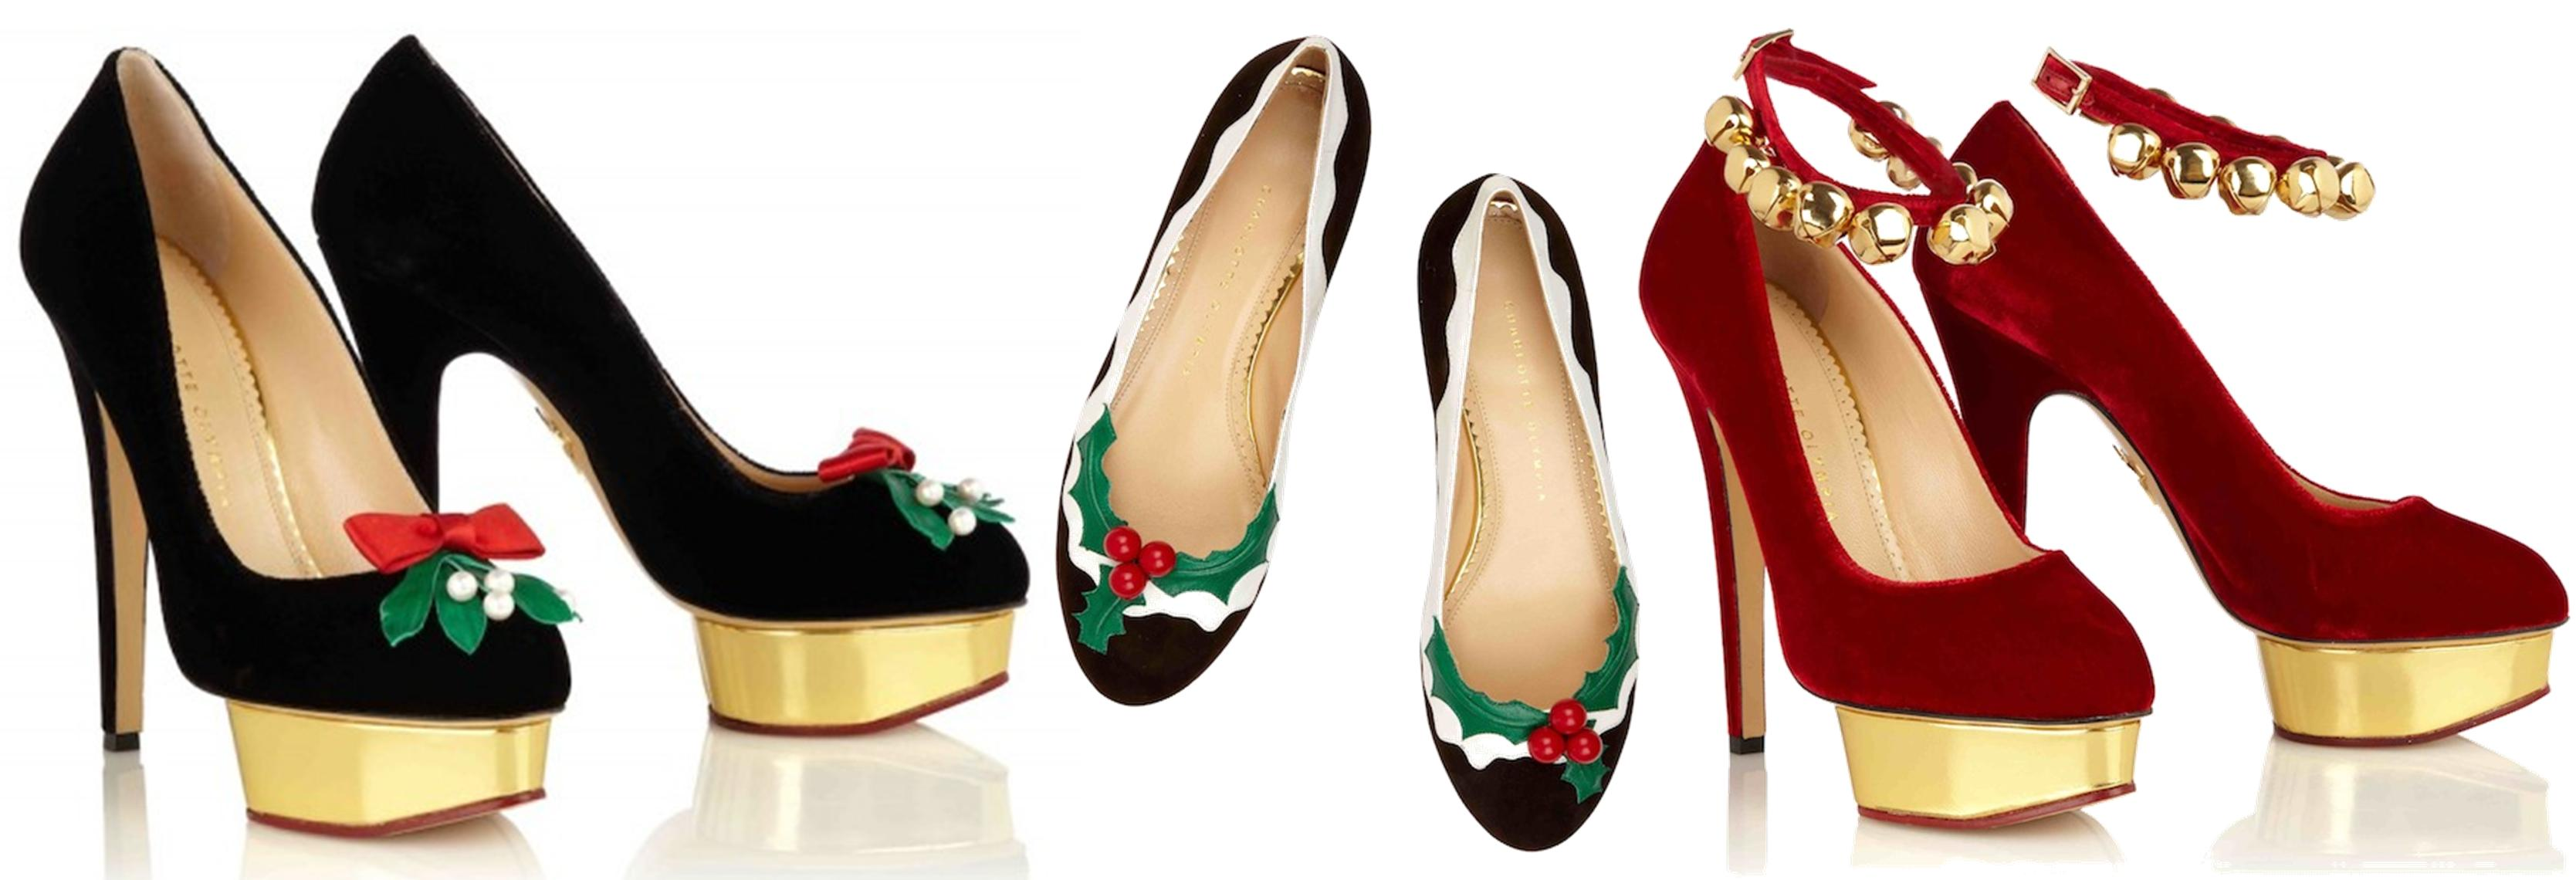 Tuesday Shoesday ~ The most festive footwear ever!